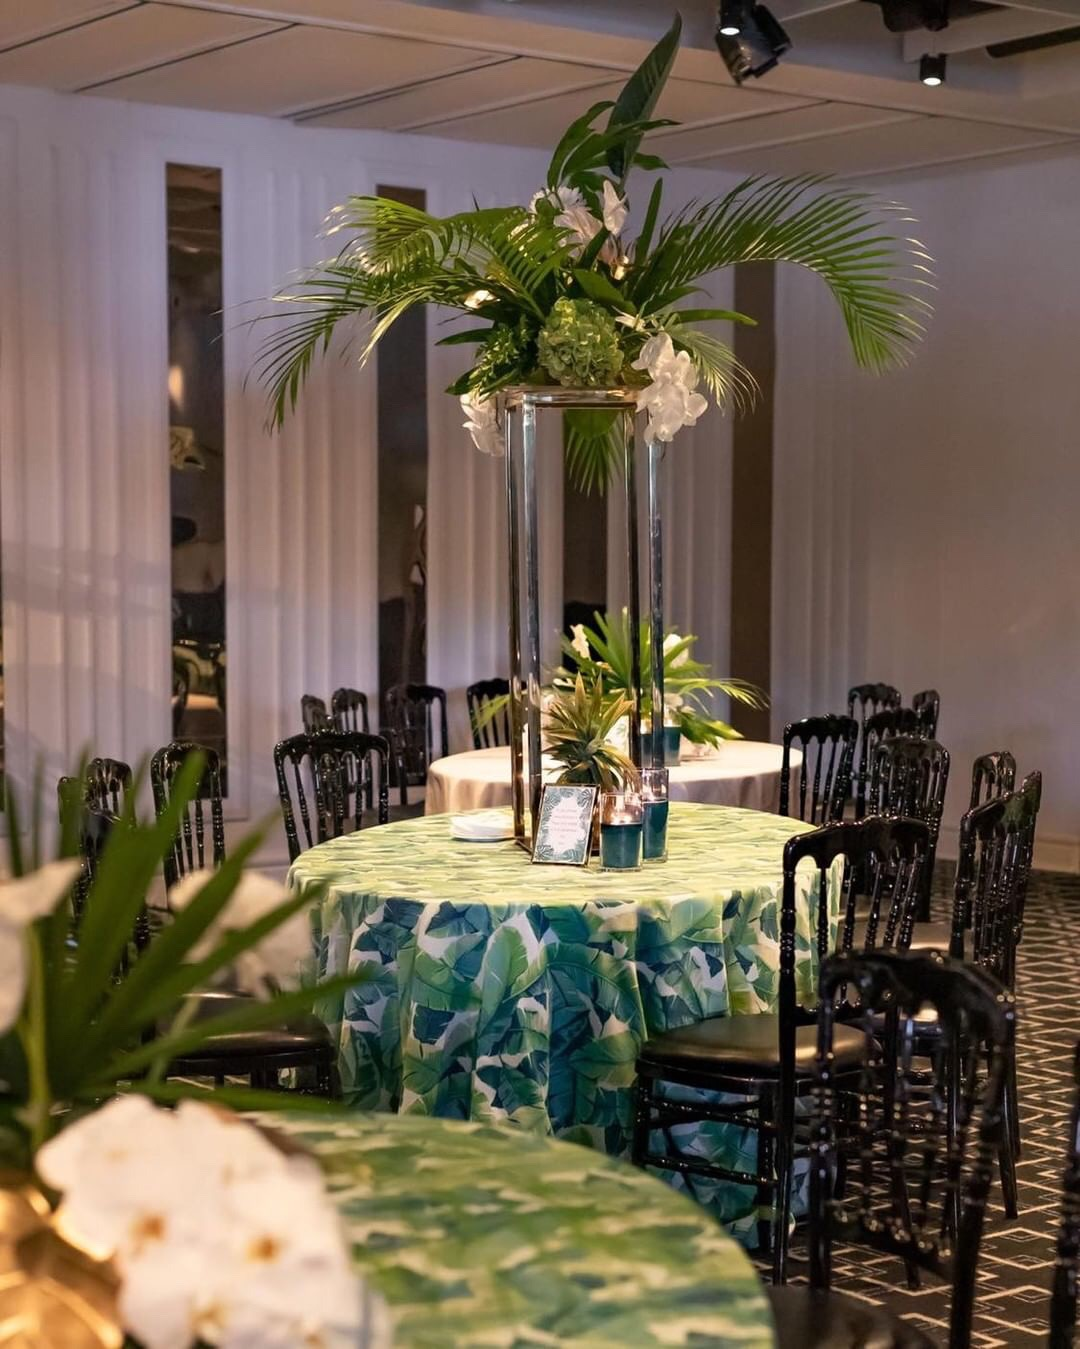 Hire_Palm_spring_luxury_linen_sydney_wedding_event_palm_centrepeice.JPG